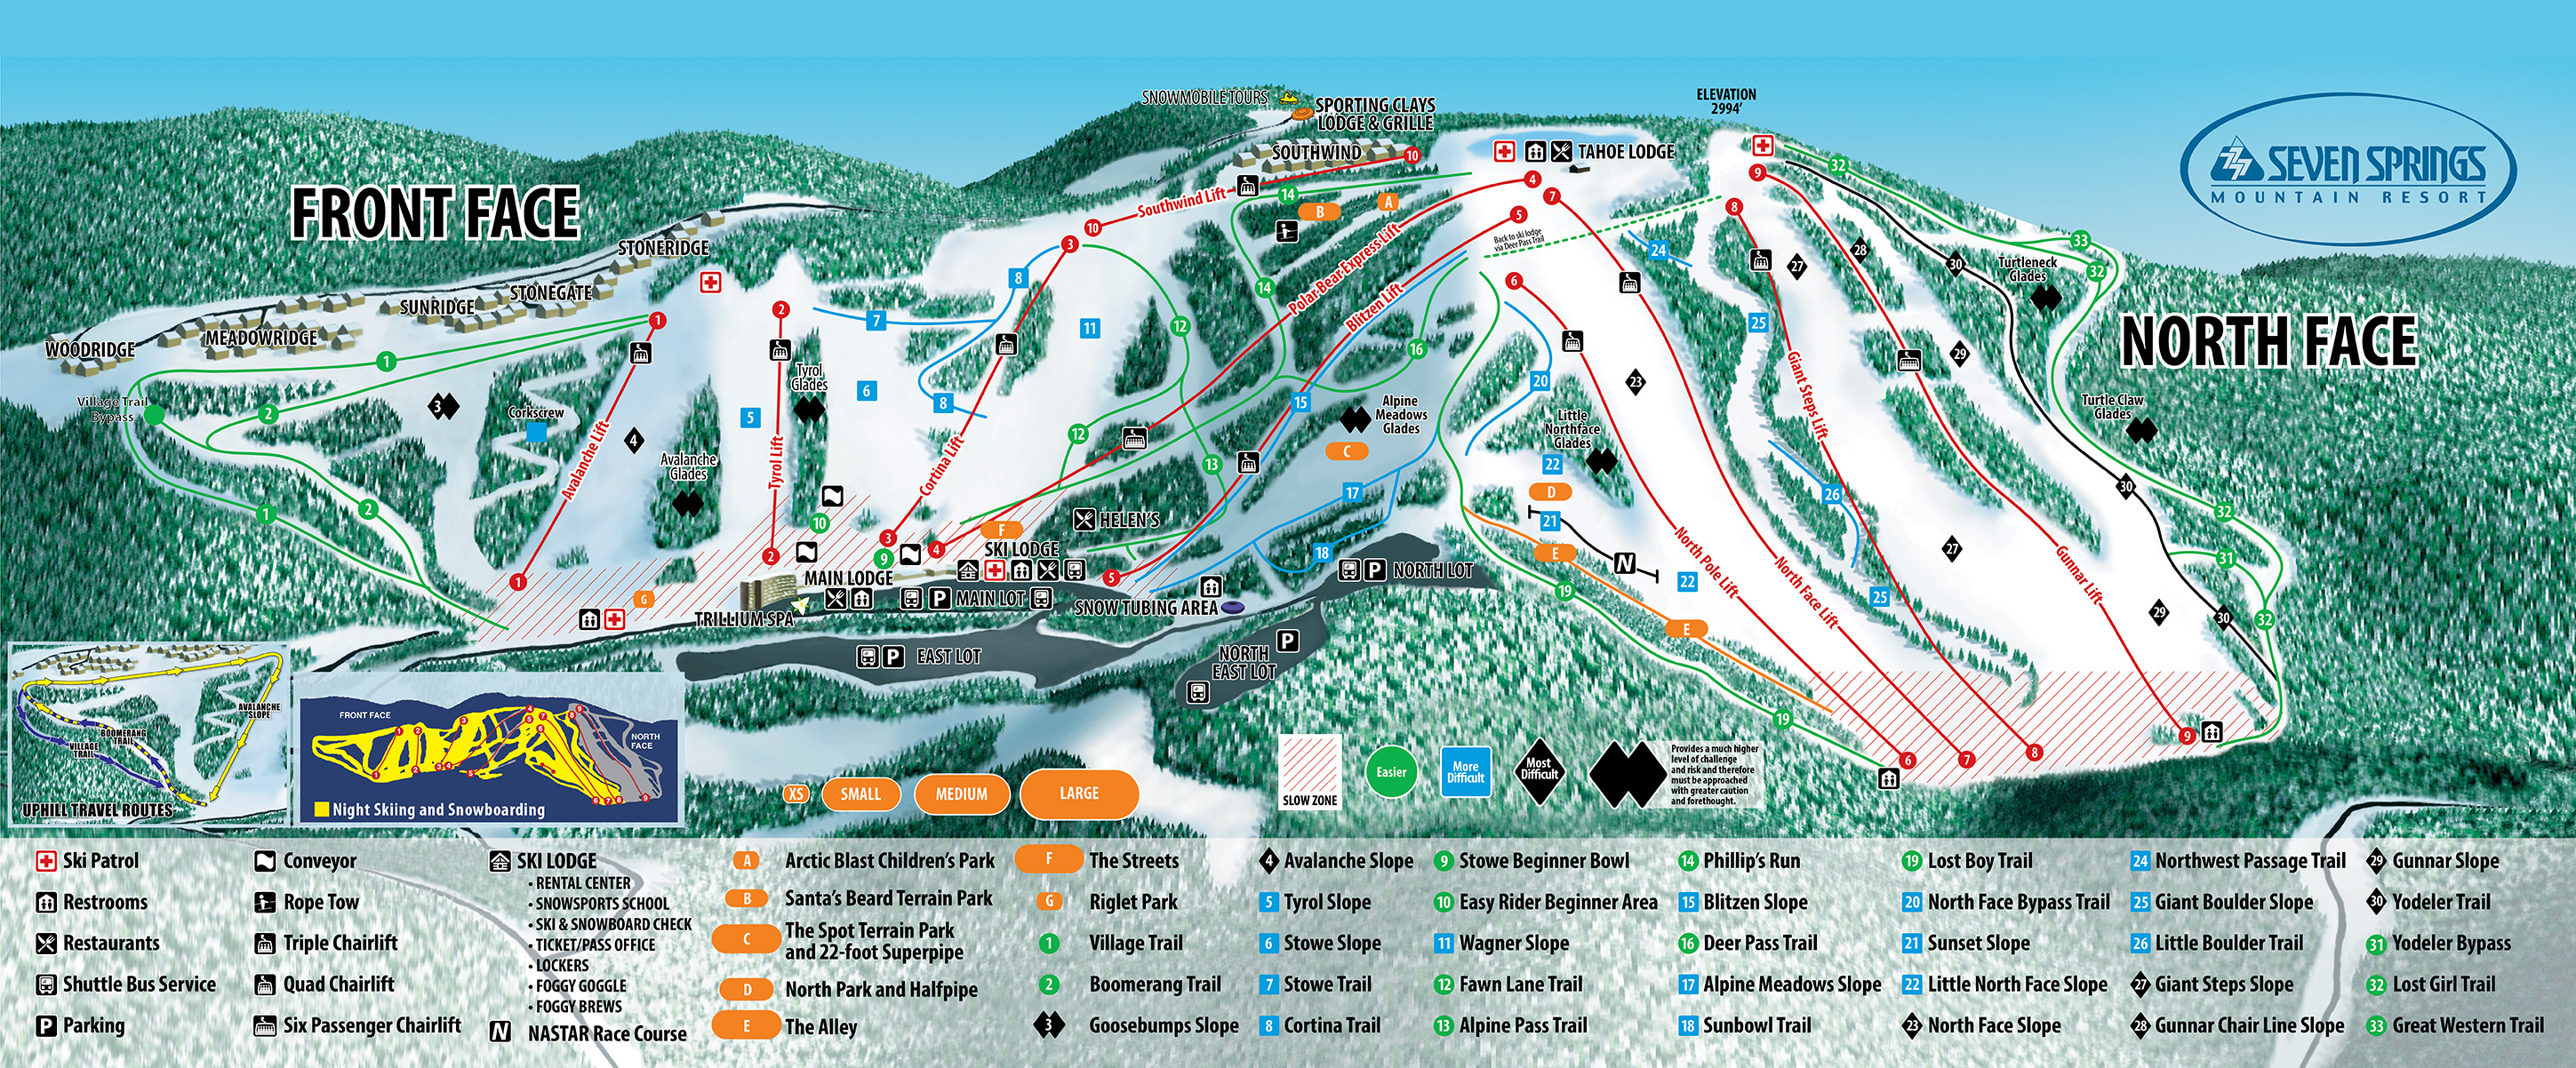 slopes & trails | pa pennsylvania ski resort | four season resort